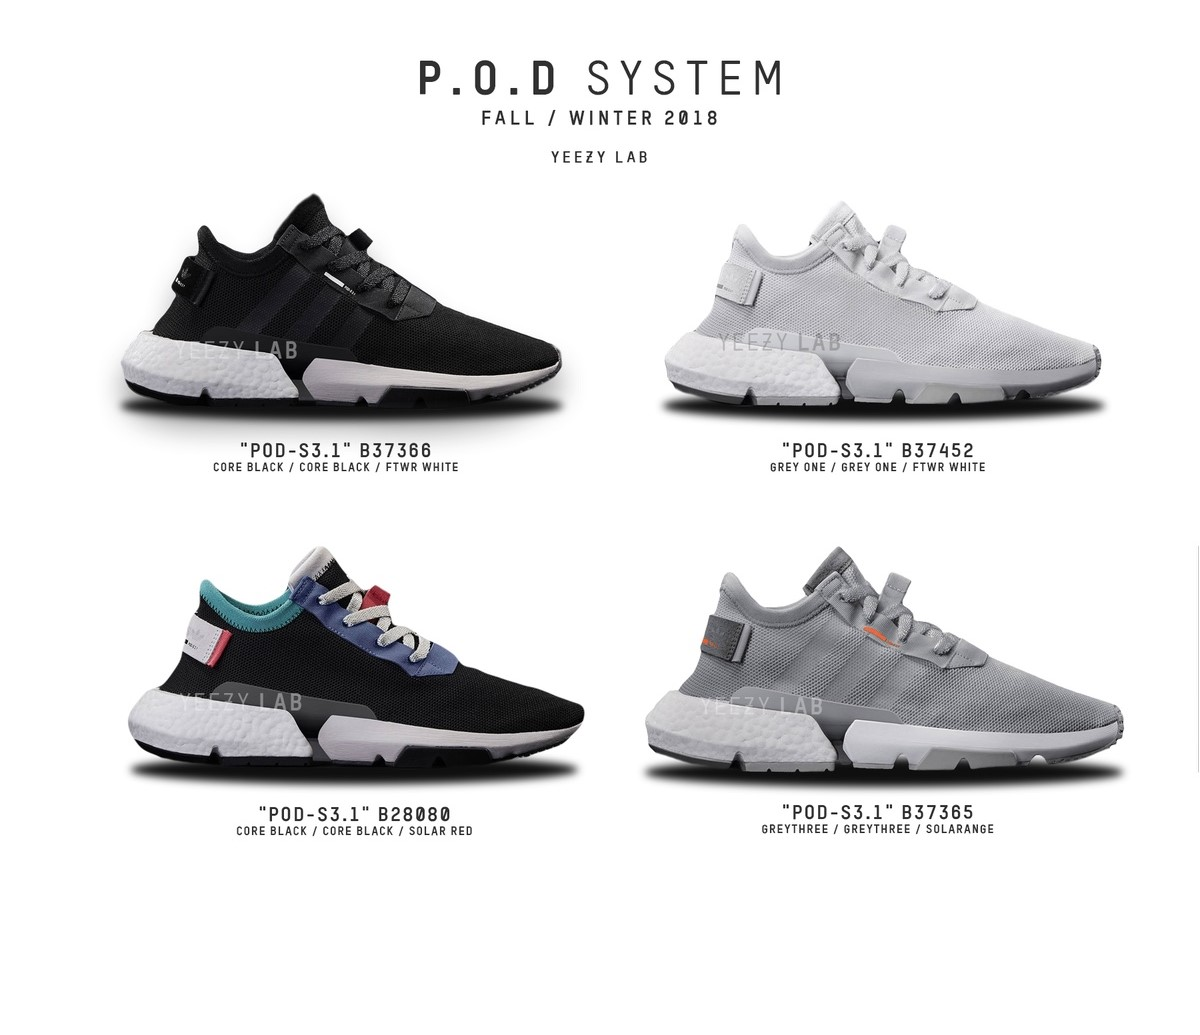 adidas-pod-system-3-1-release-201806